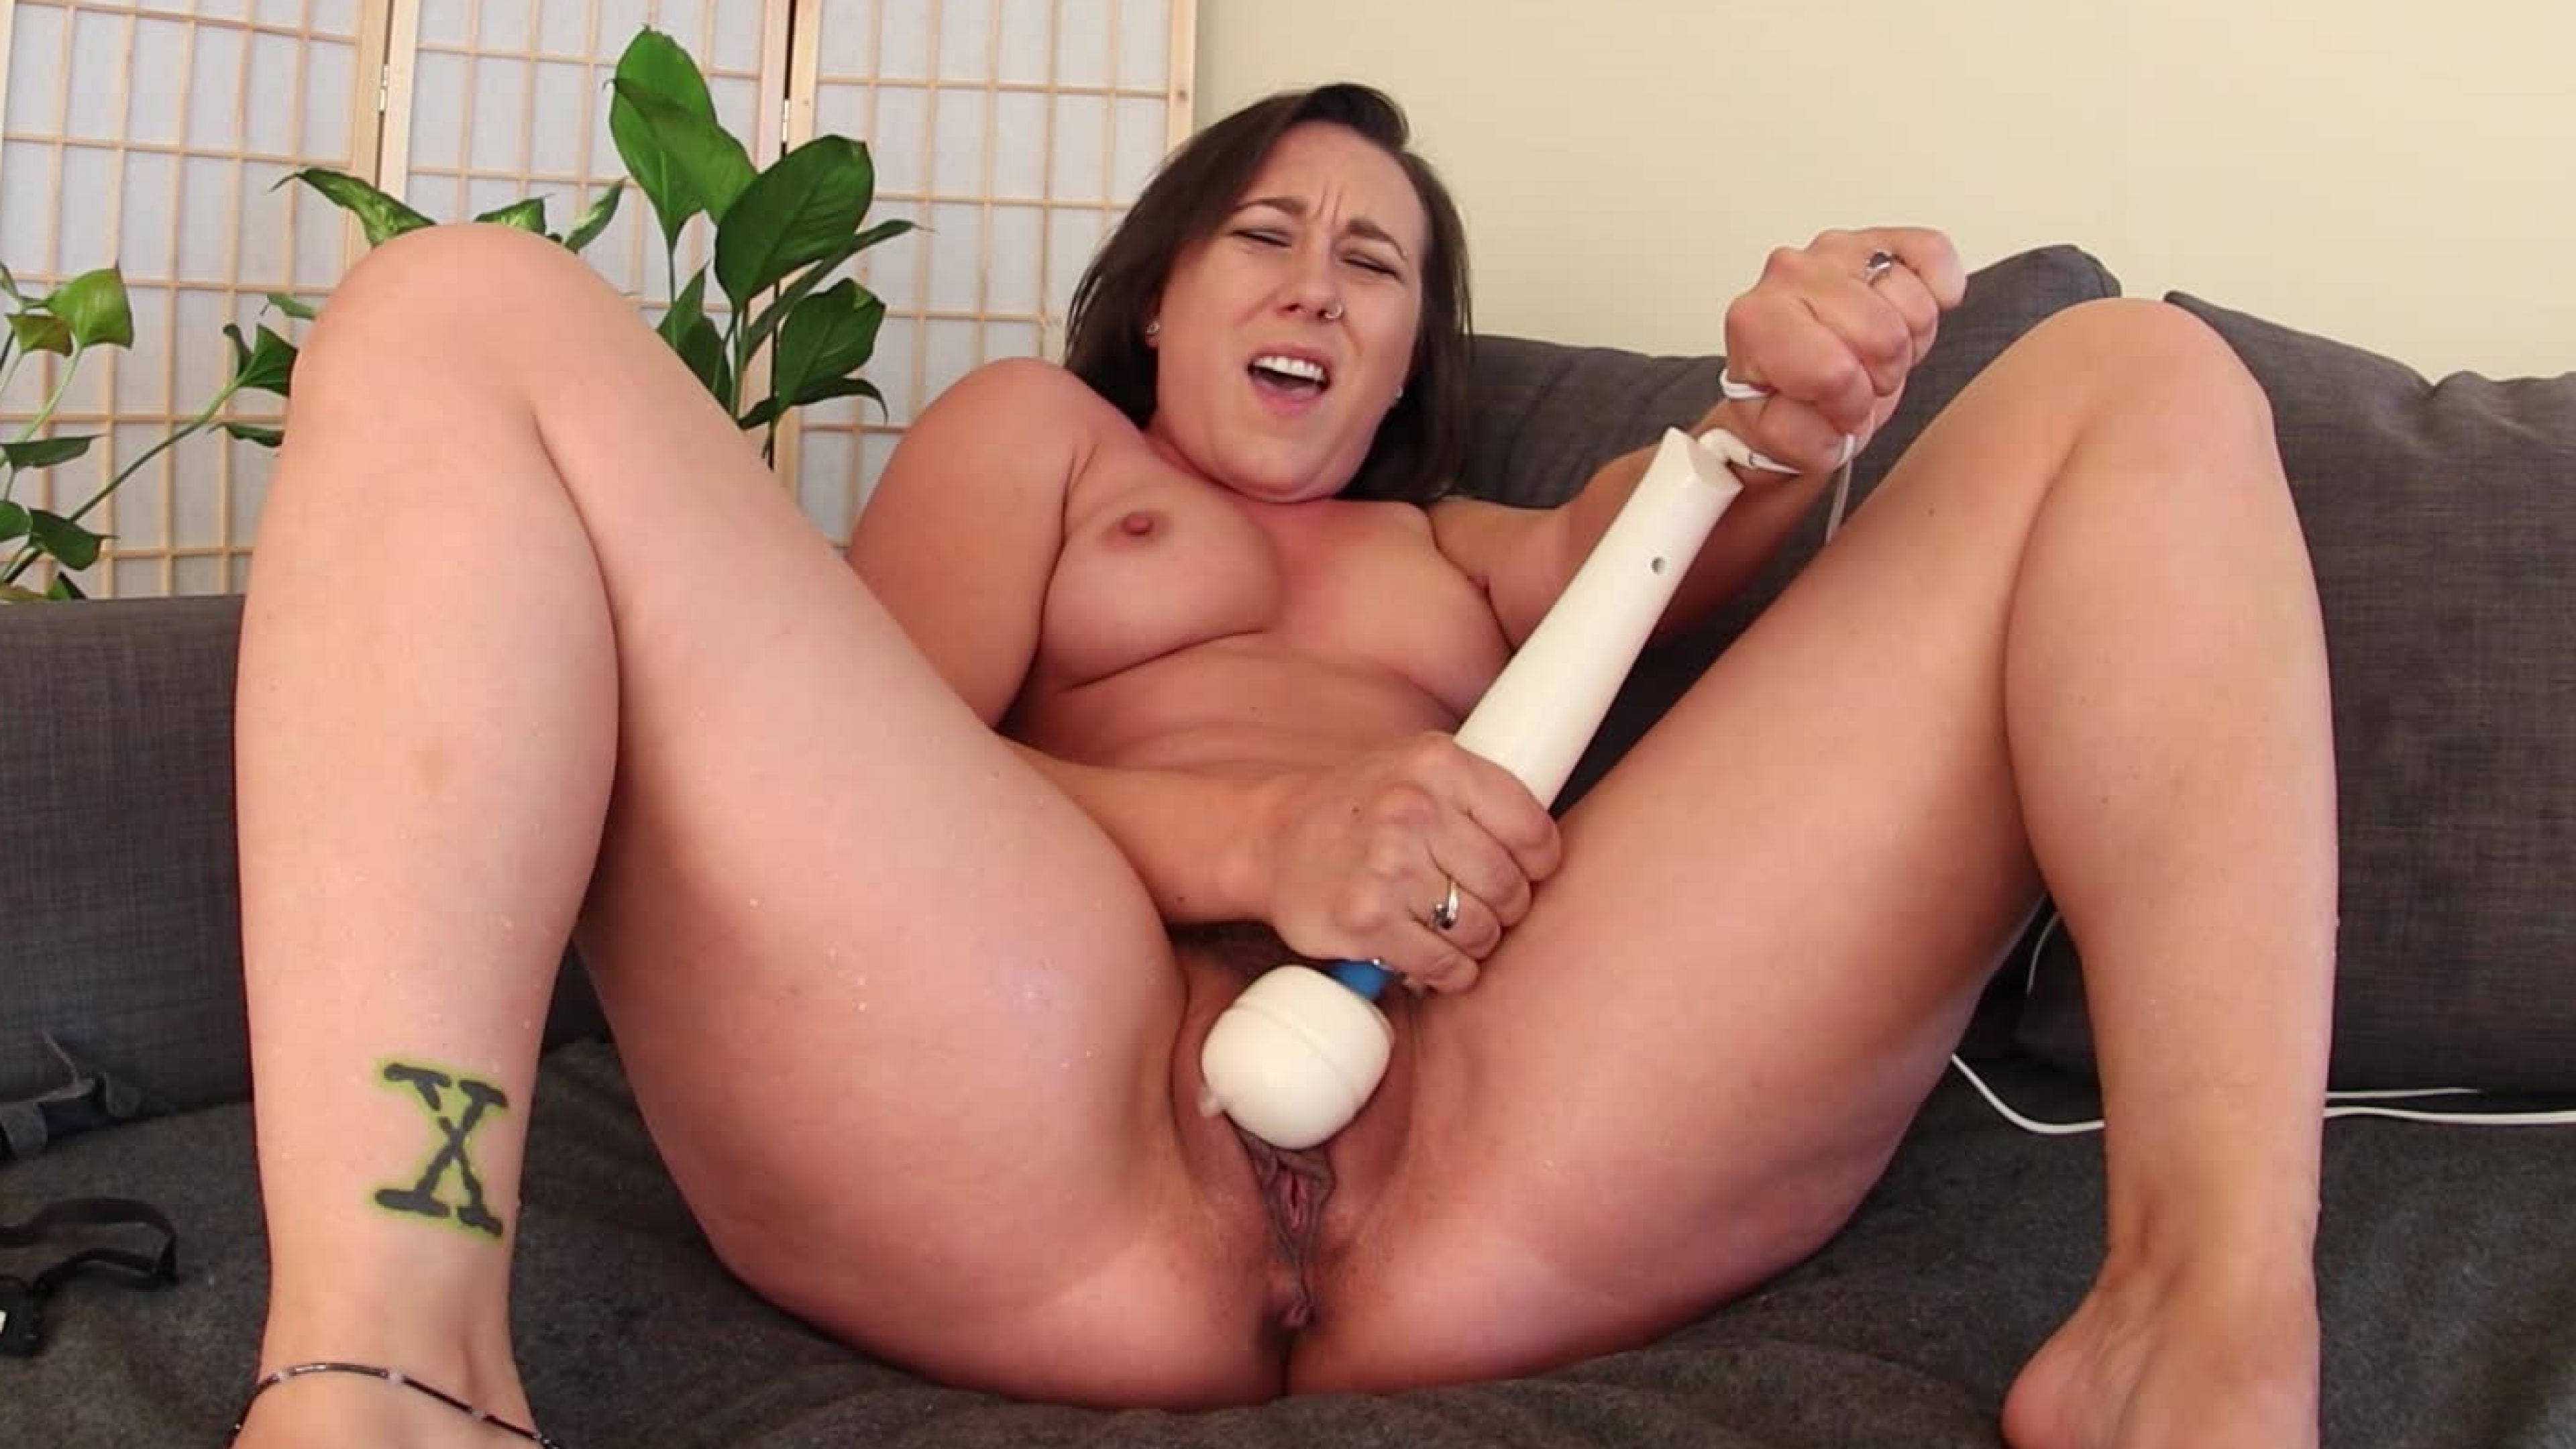 Sinn Sages Screaming Squirting Orgasm - VR mom is naked tumblr